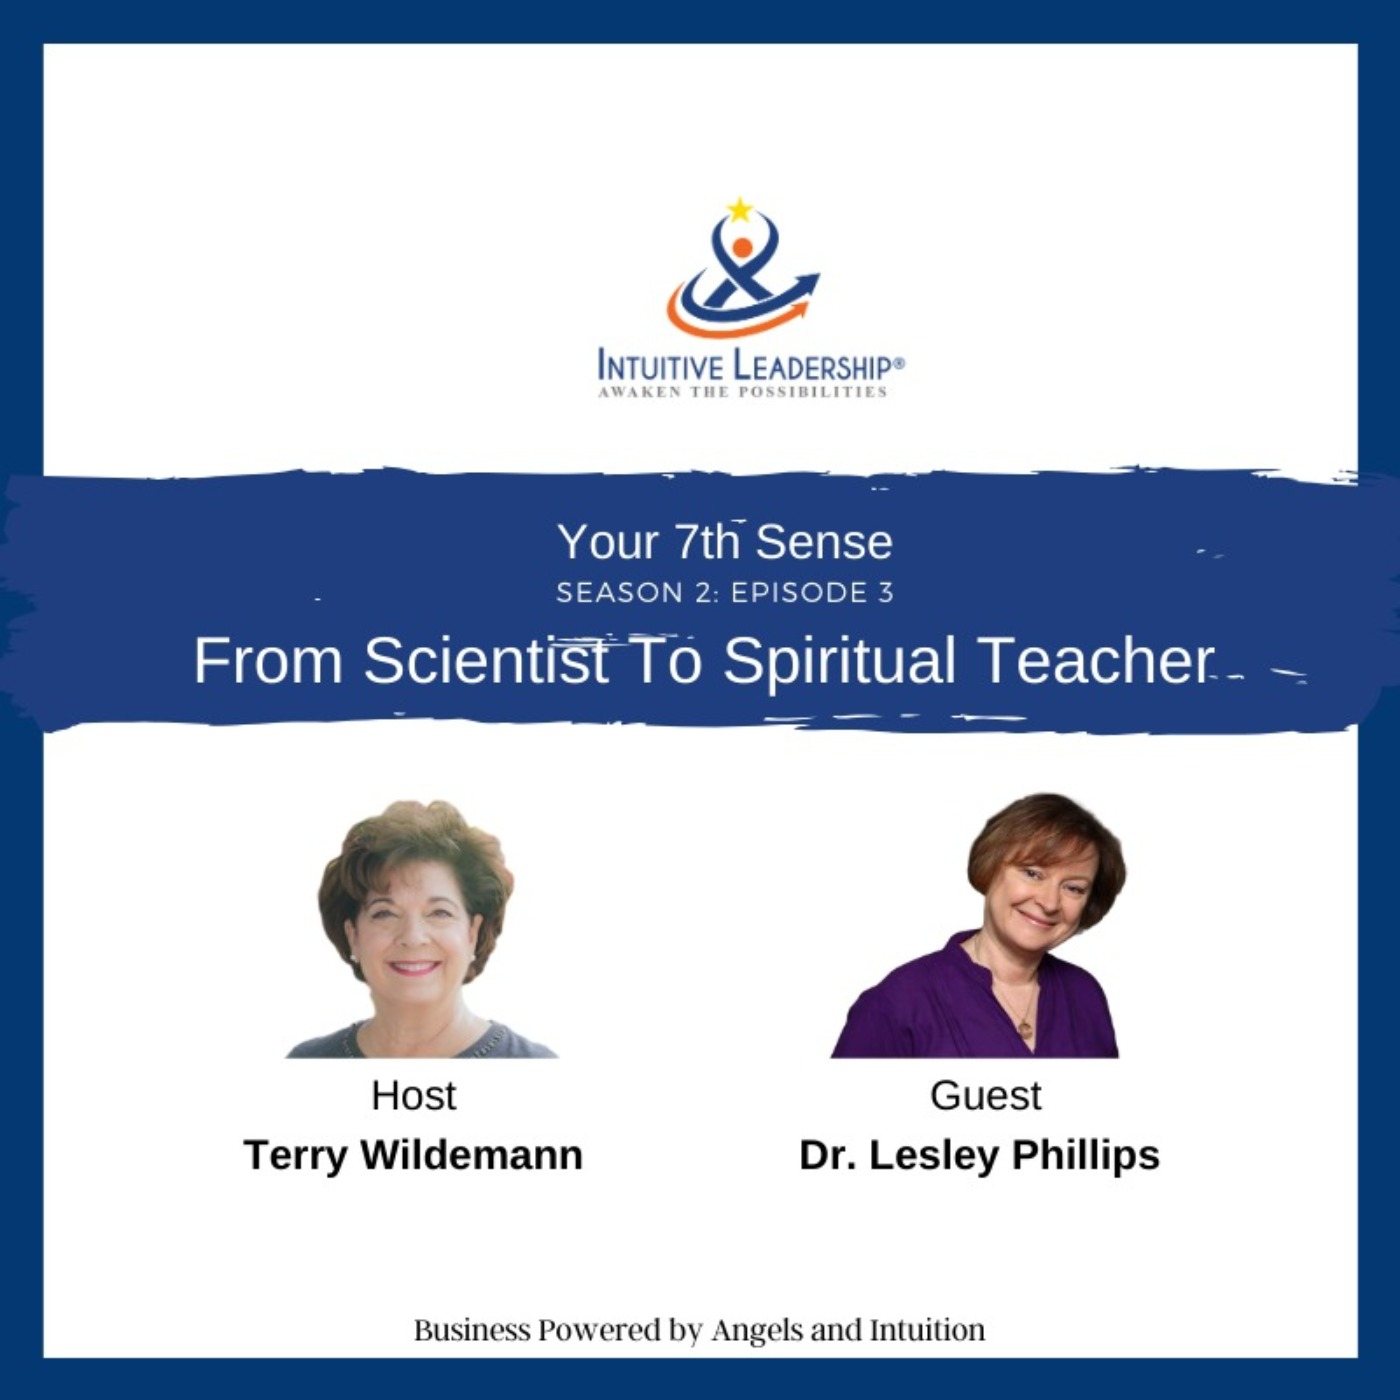 Your 7th Sense: From Scientist To Spiritual Teacher